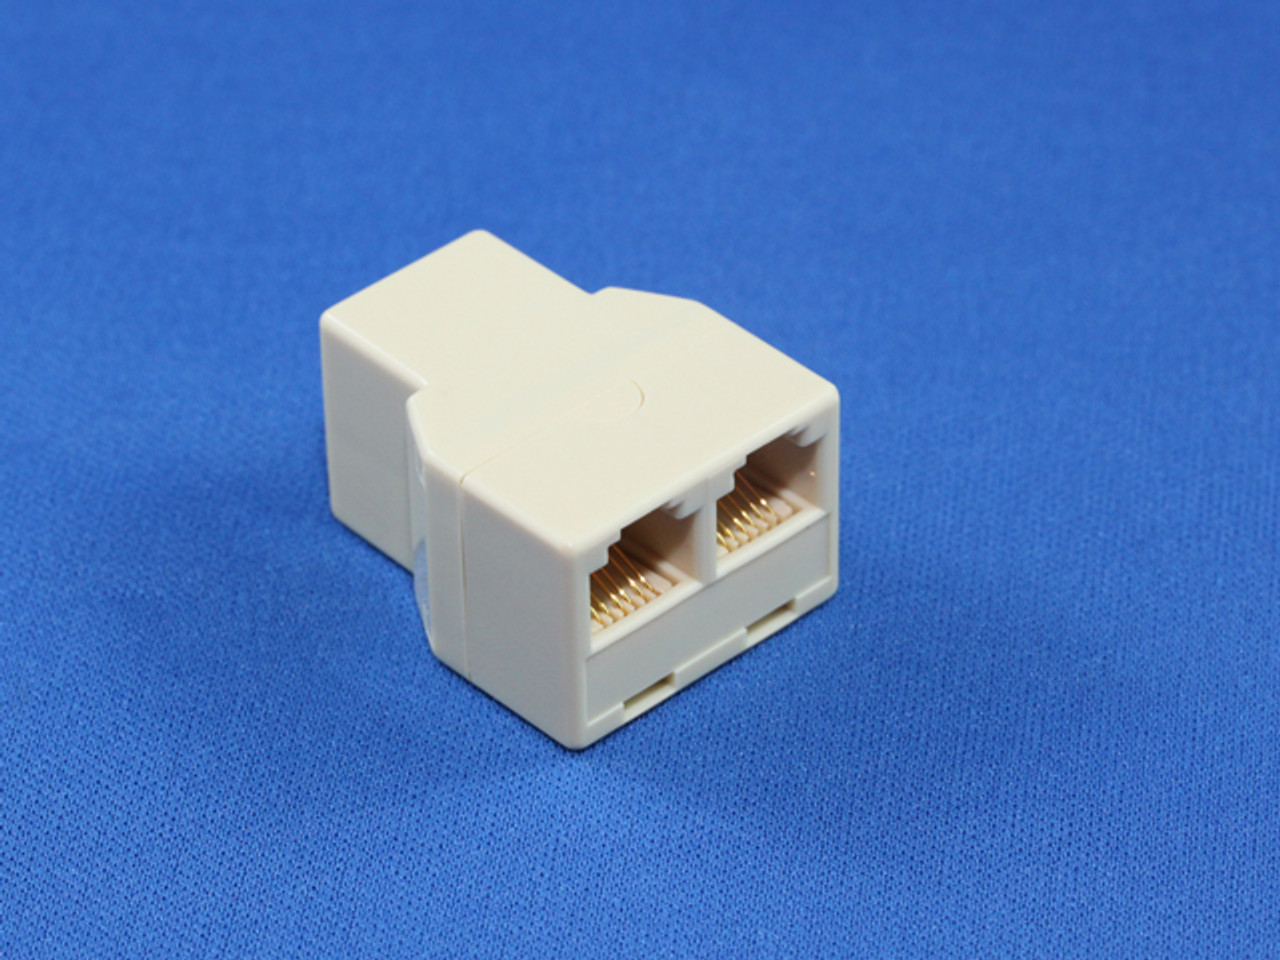 Product image for RJ12 6P6C 3 Way Coupler | CX Computer Superstore